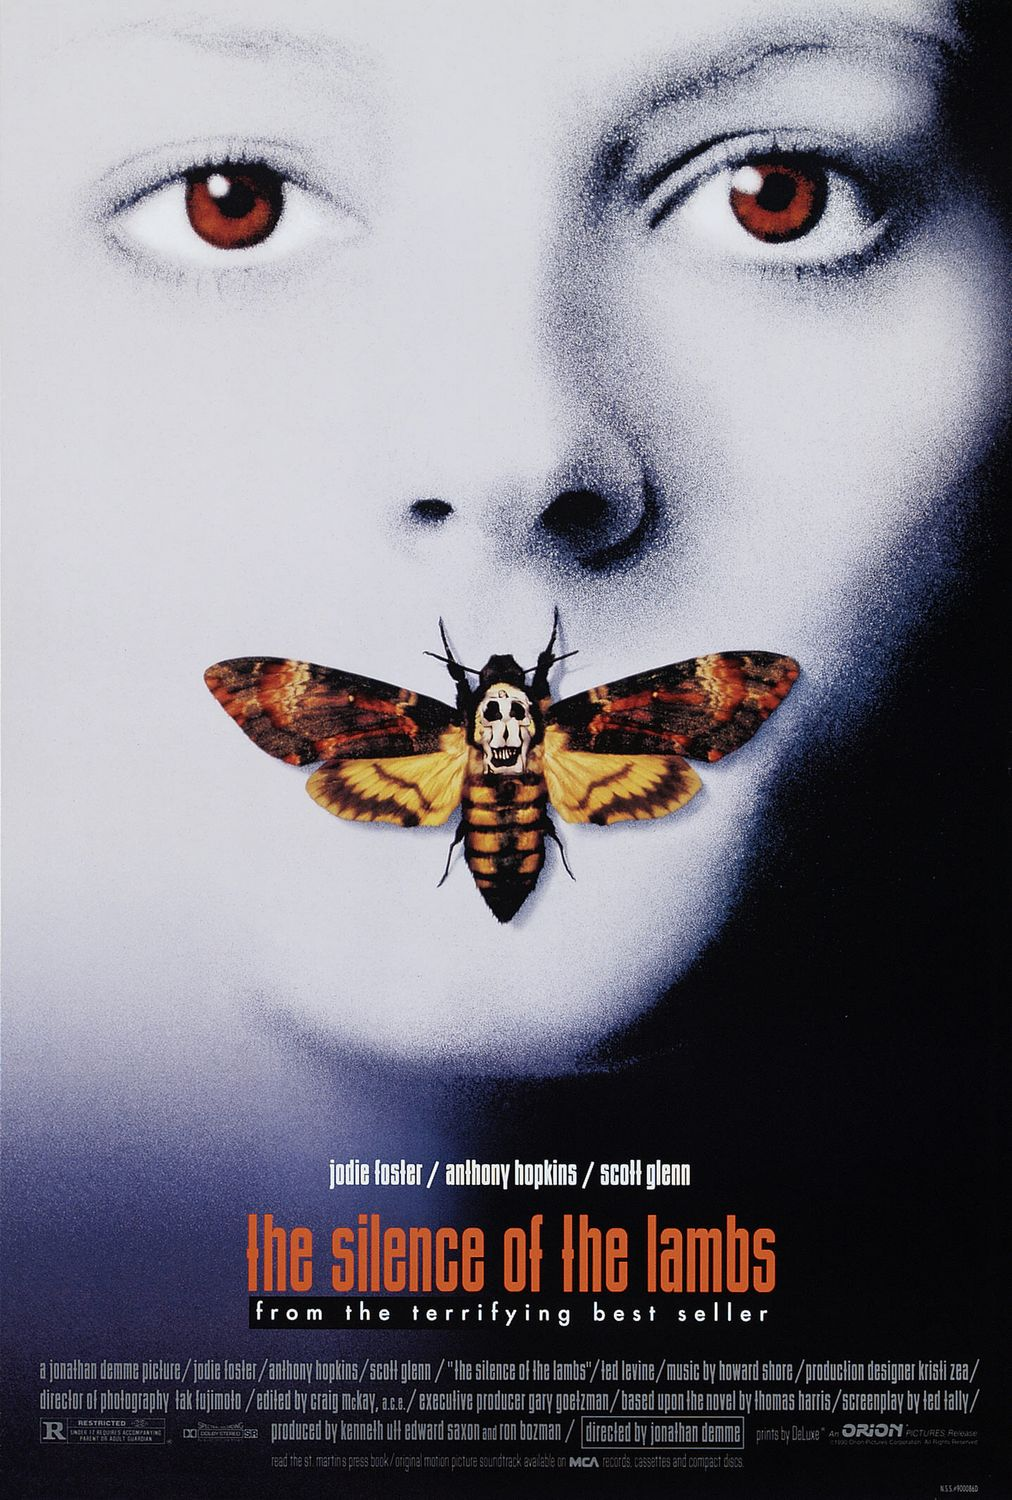 the+silence+of+the+lambs+movie+poster+1.jpg